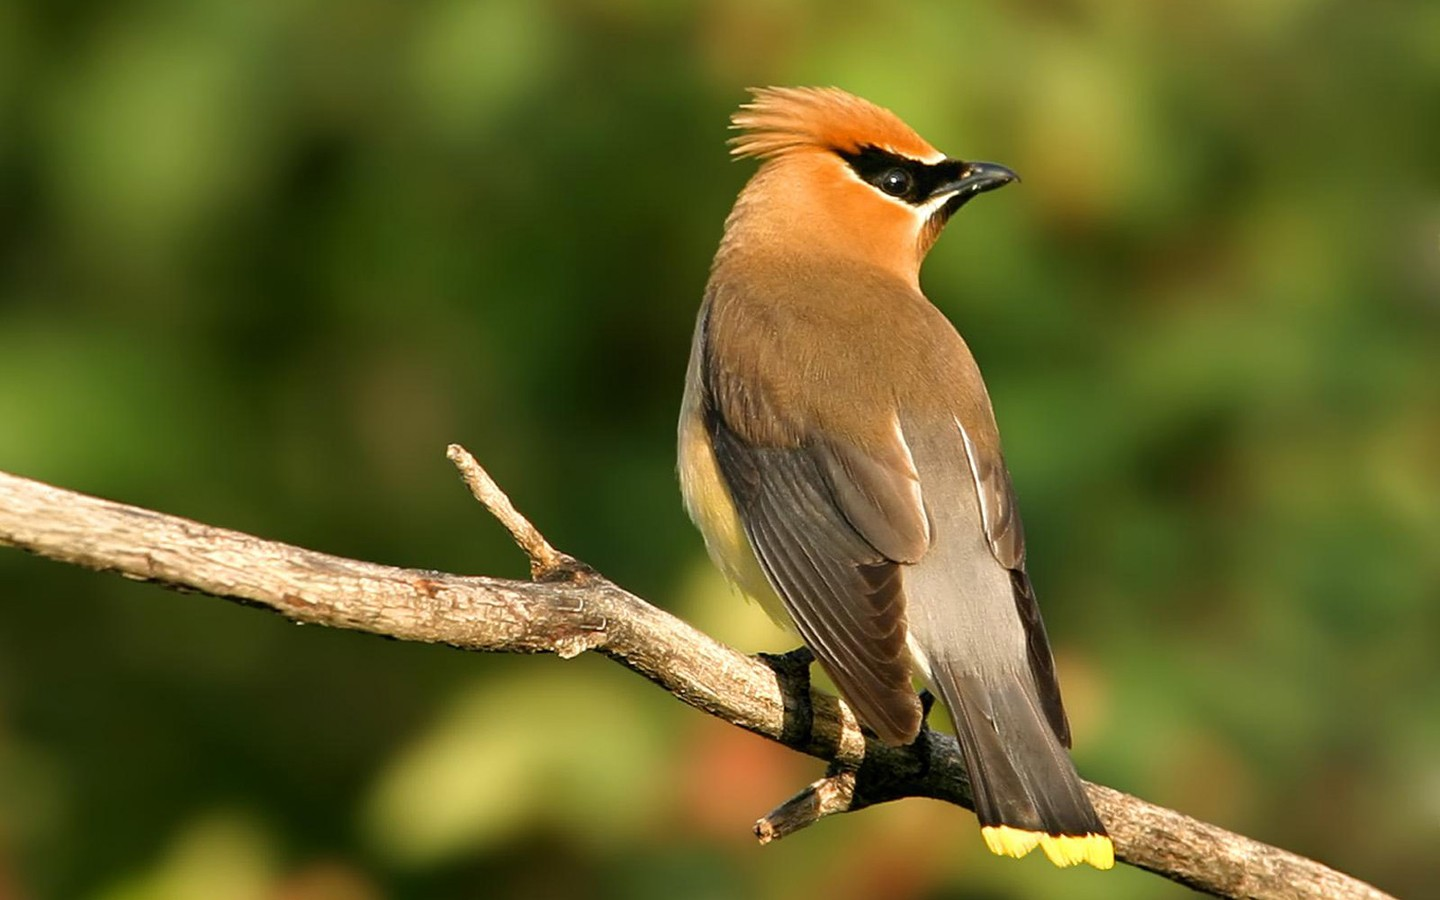 http://www.wallcoo.net/animal/fancy_birds/wallpapers/1440x900/Cedar%20waxwing3.jpg